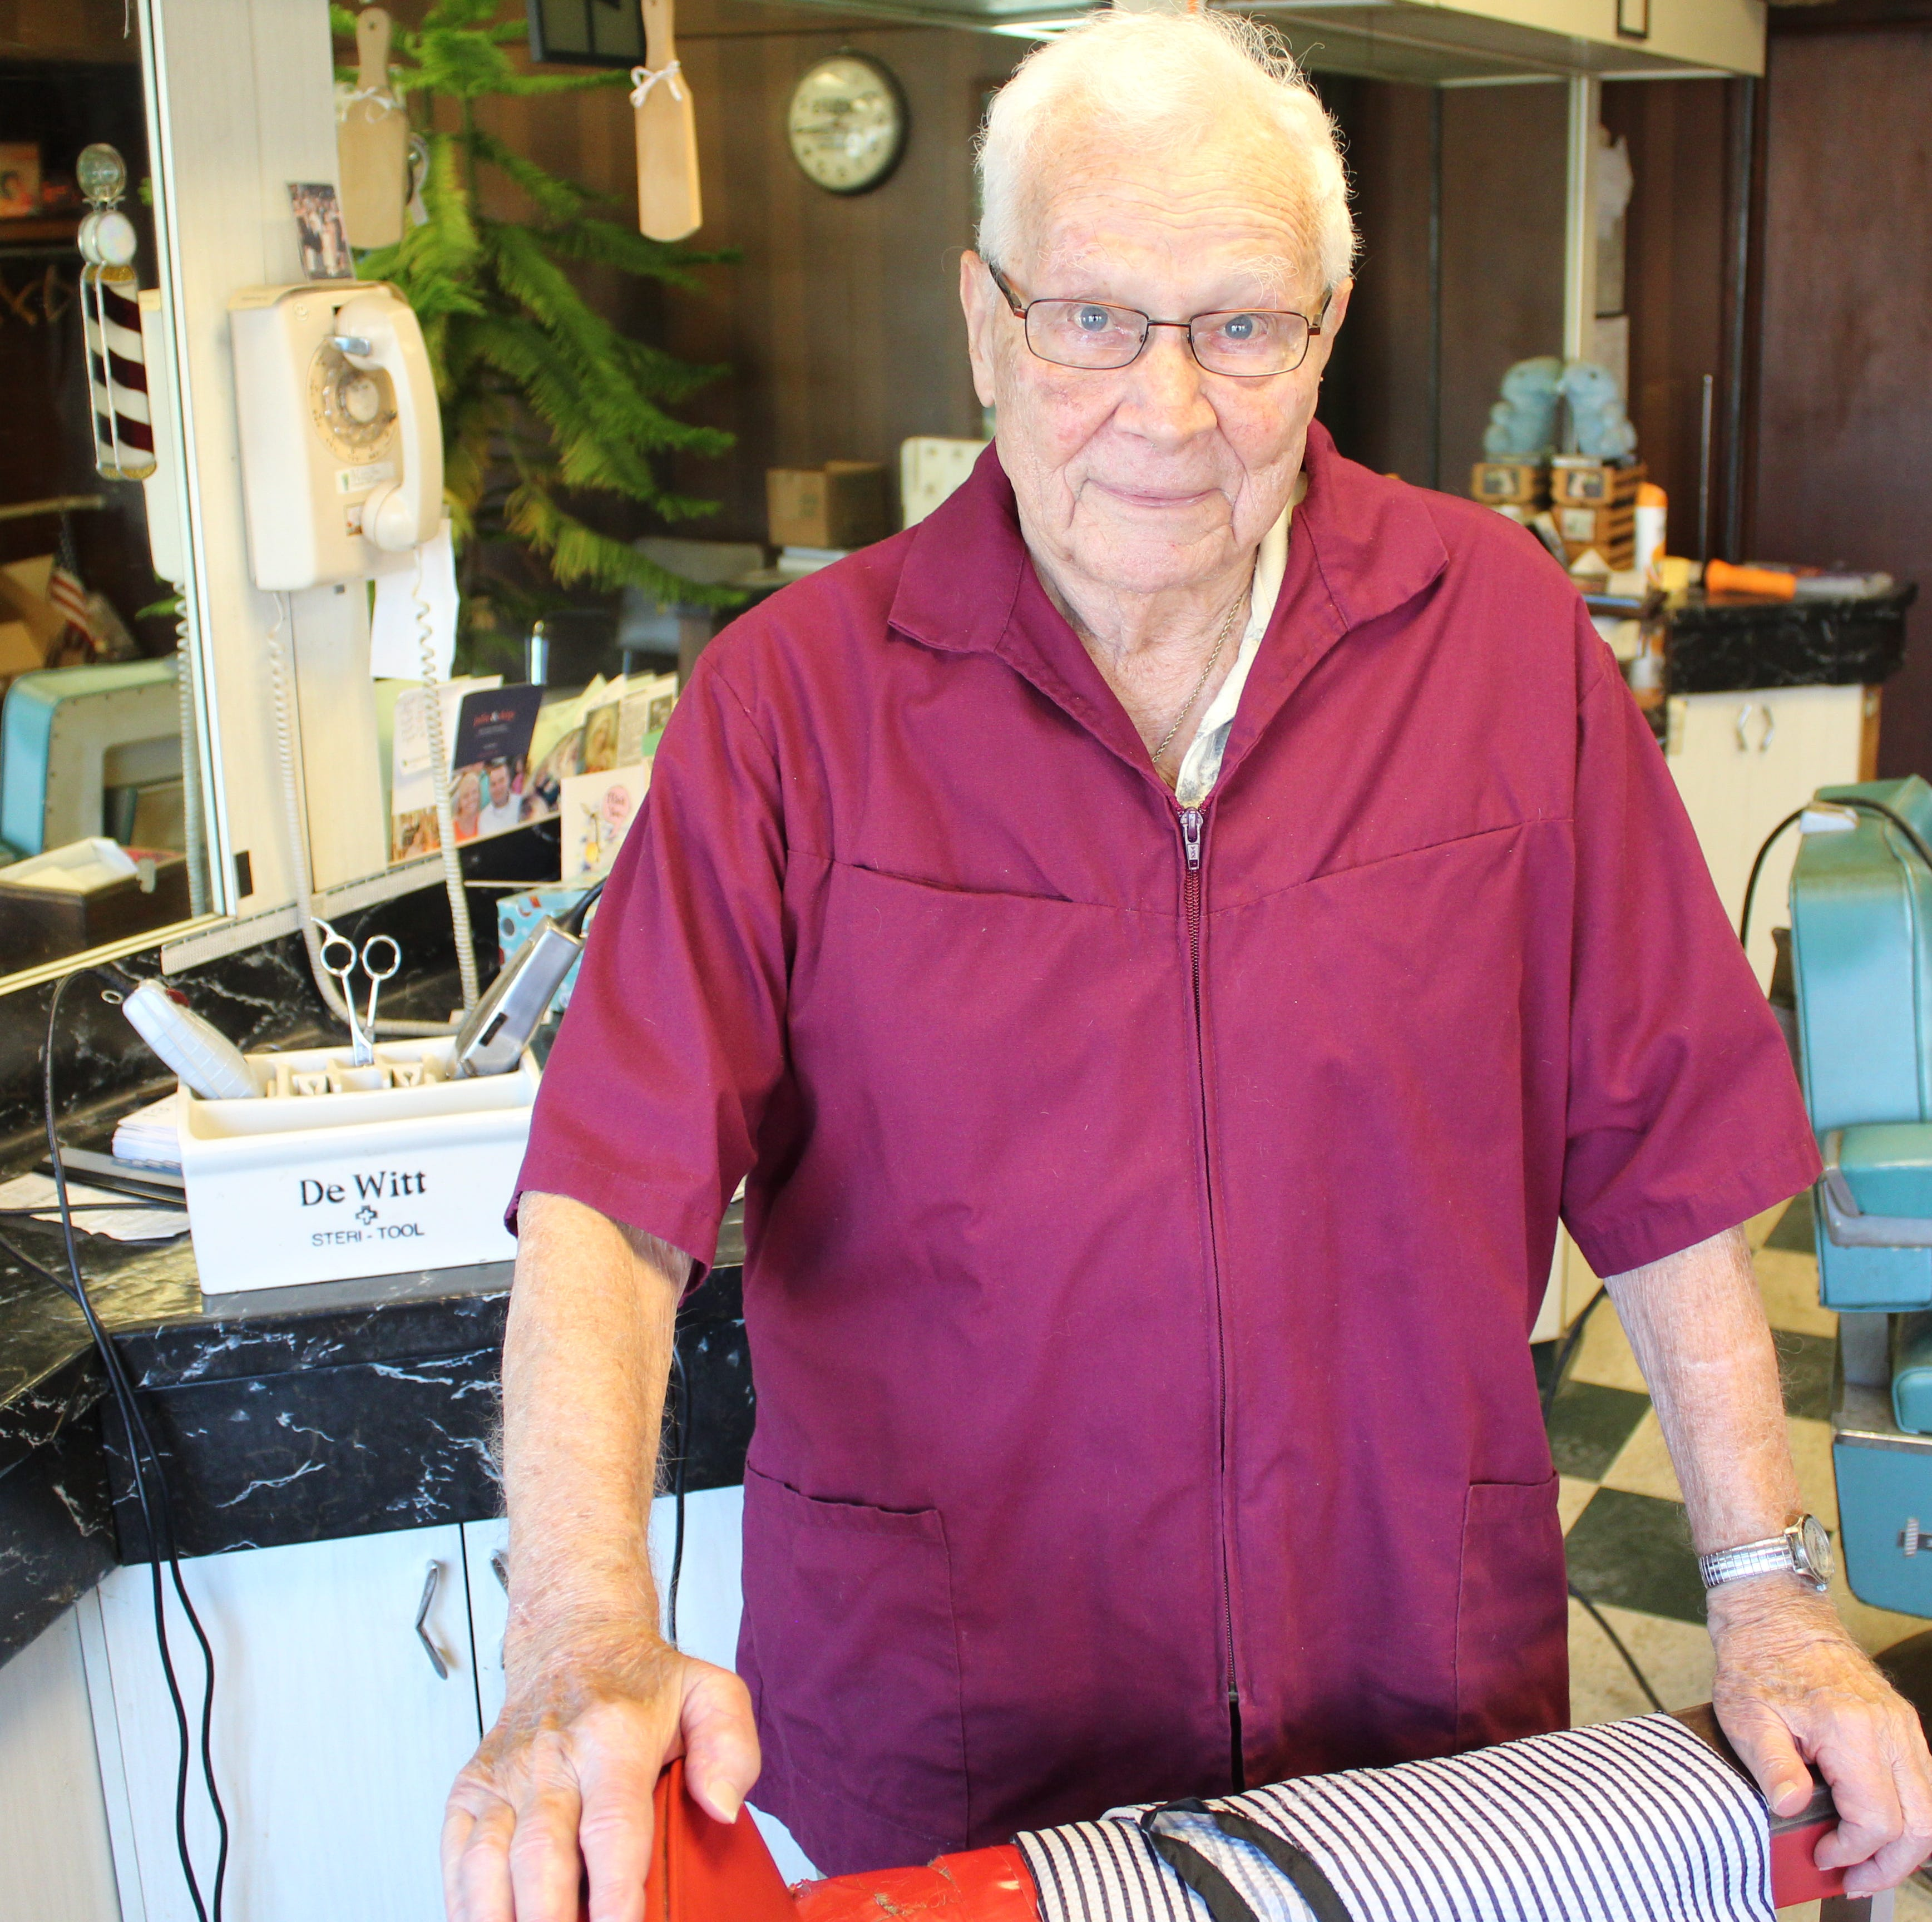 After 62 years, Cronin will put his barber scissors away